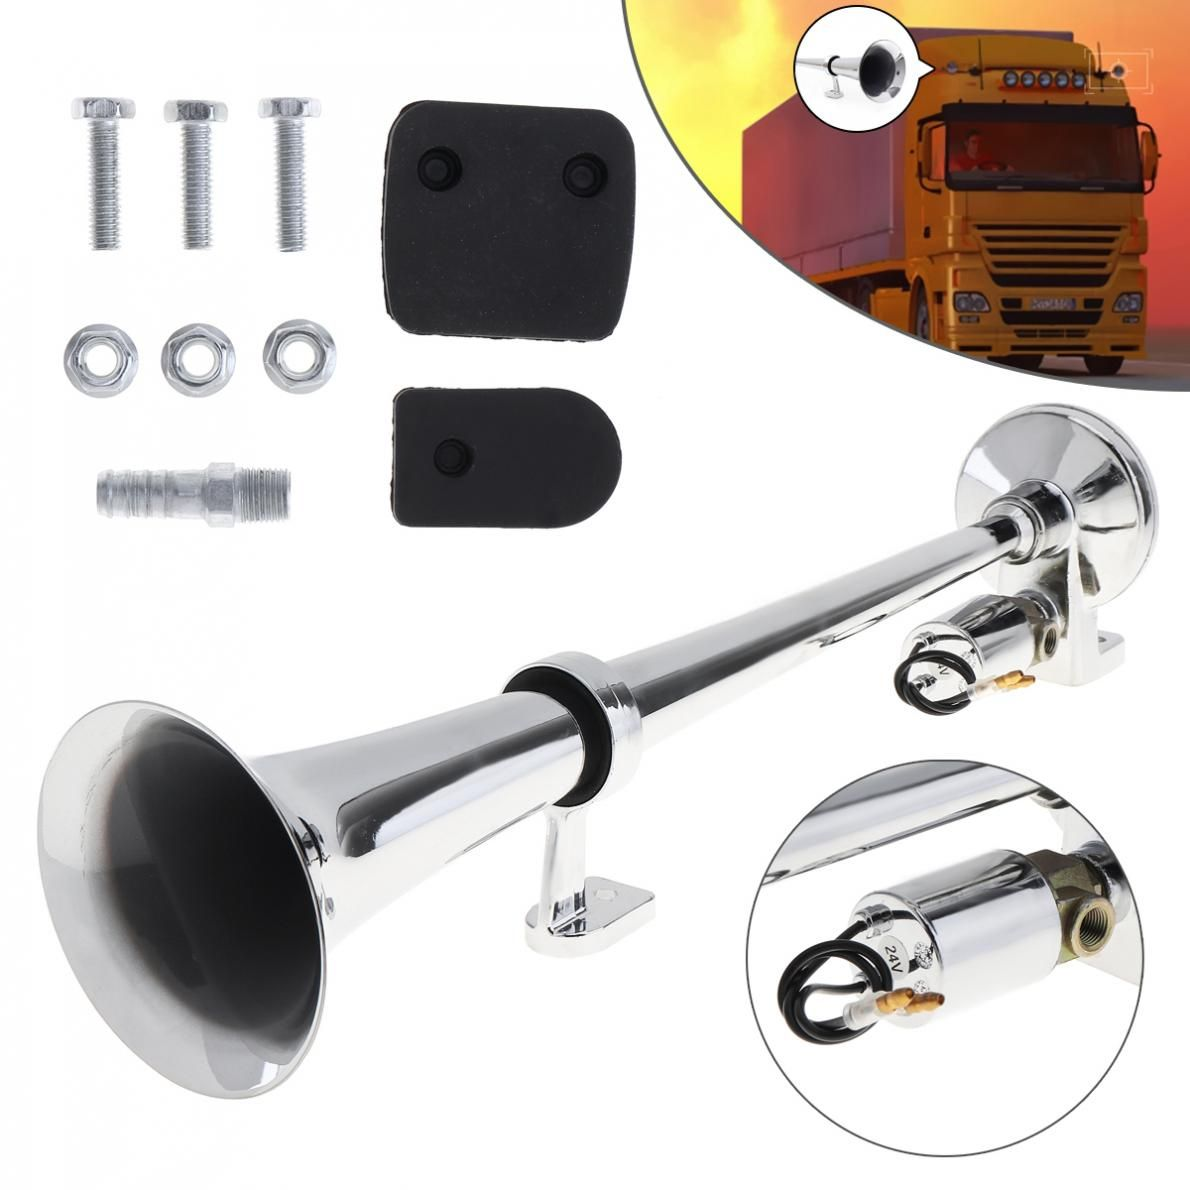 17Inch Chrome Plated ZINC Universal 150dB Super Loud Single Trumpet Car Air Operated Horn for Automobiles Truck Boat Train